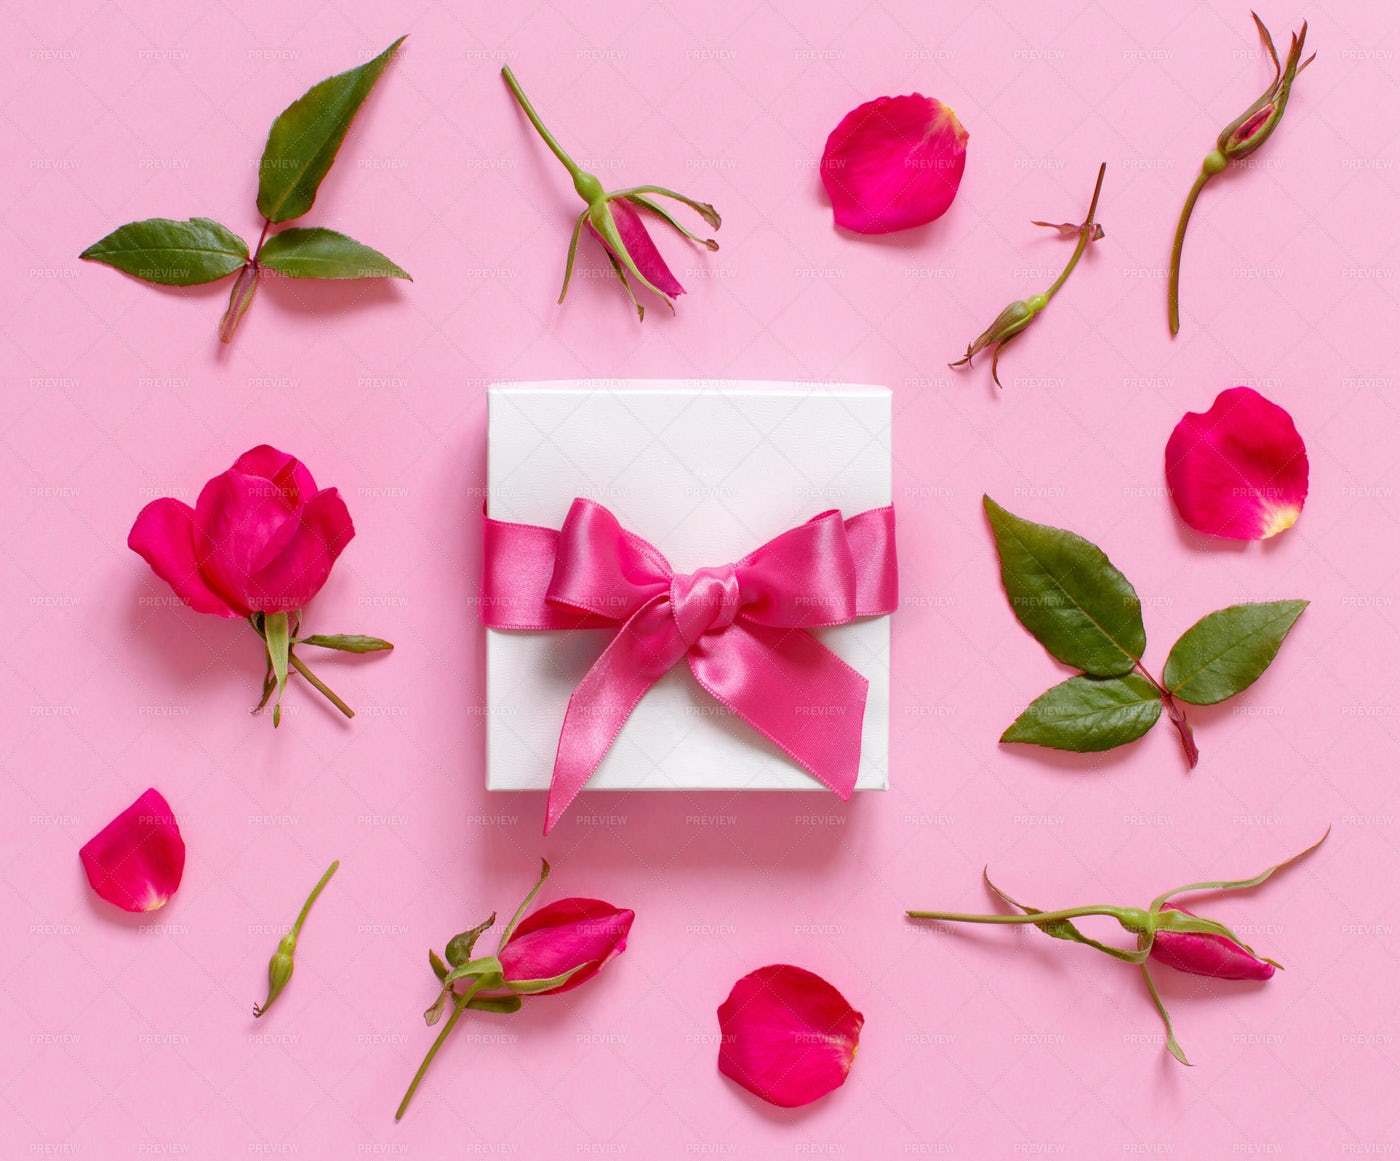 Gift Box And Roses: Stock Photos